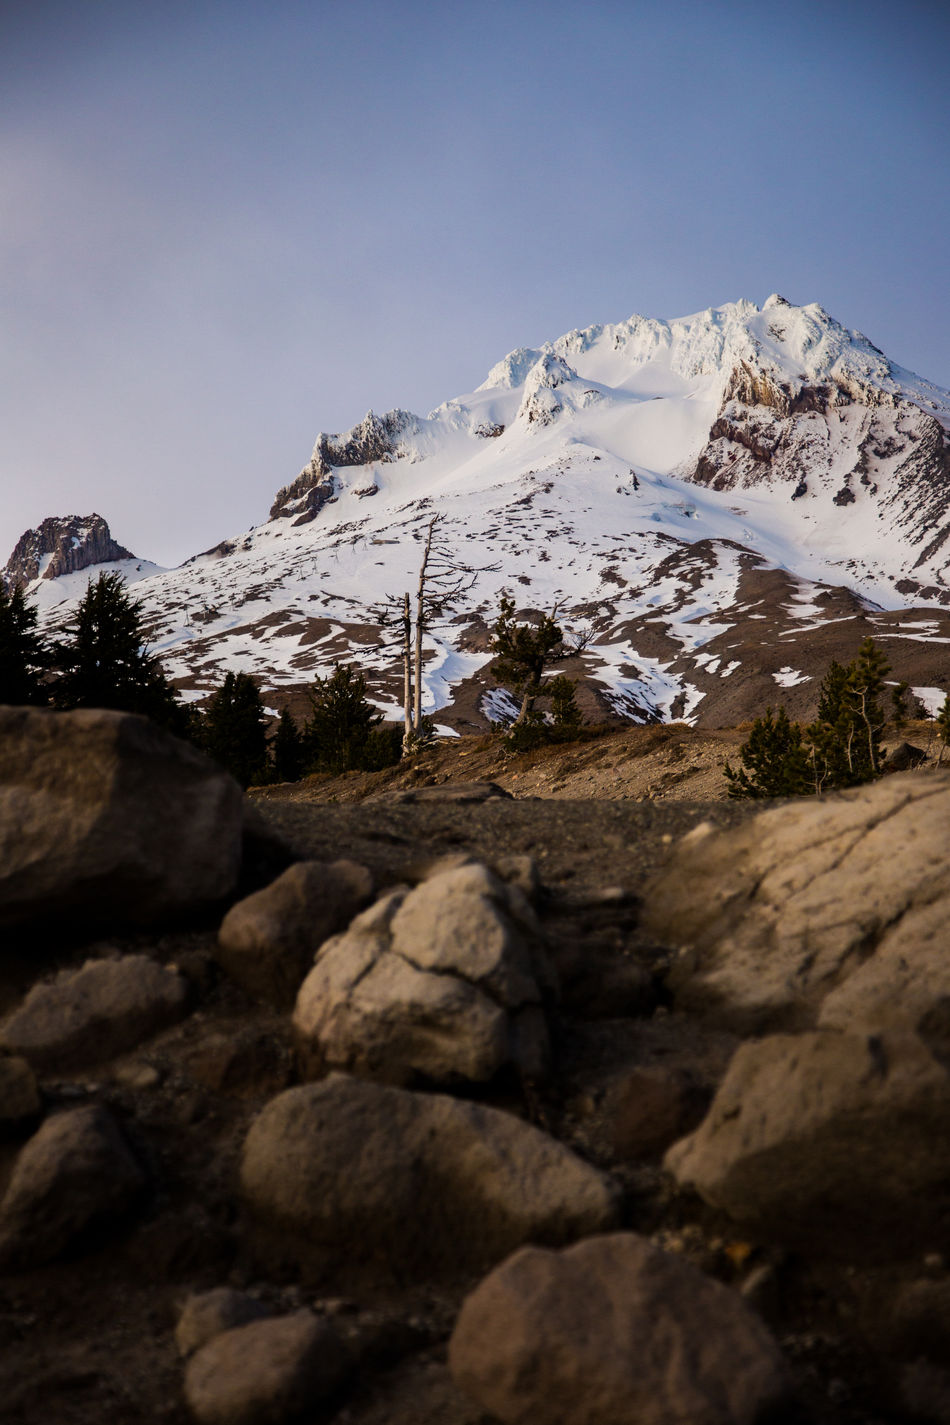 Canon 5DmkIII Beauty In Nature Cold Temperature Early Winter Hiking Landscape Mount Hood Mountain Mountain Peak Mountain Range Mt Hood Mt Hood Oregon Mt Hood State Forest Nature No People Oregon Mountain Oregon Outdoors Outdoors Snow Snowcapped Mountain Timberline Timberline Lodge